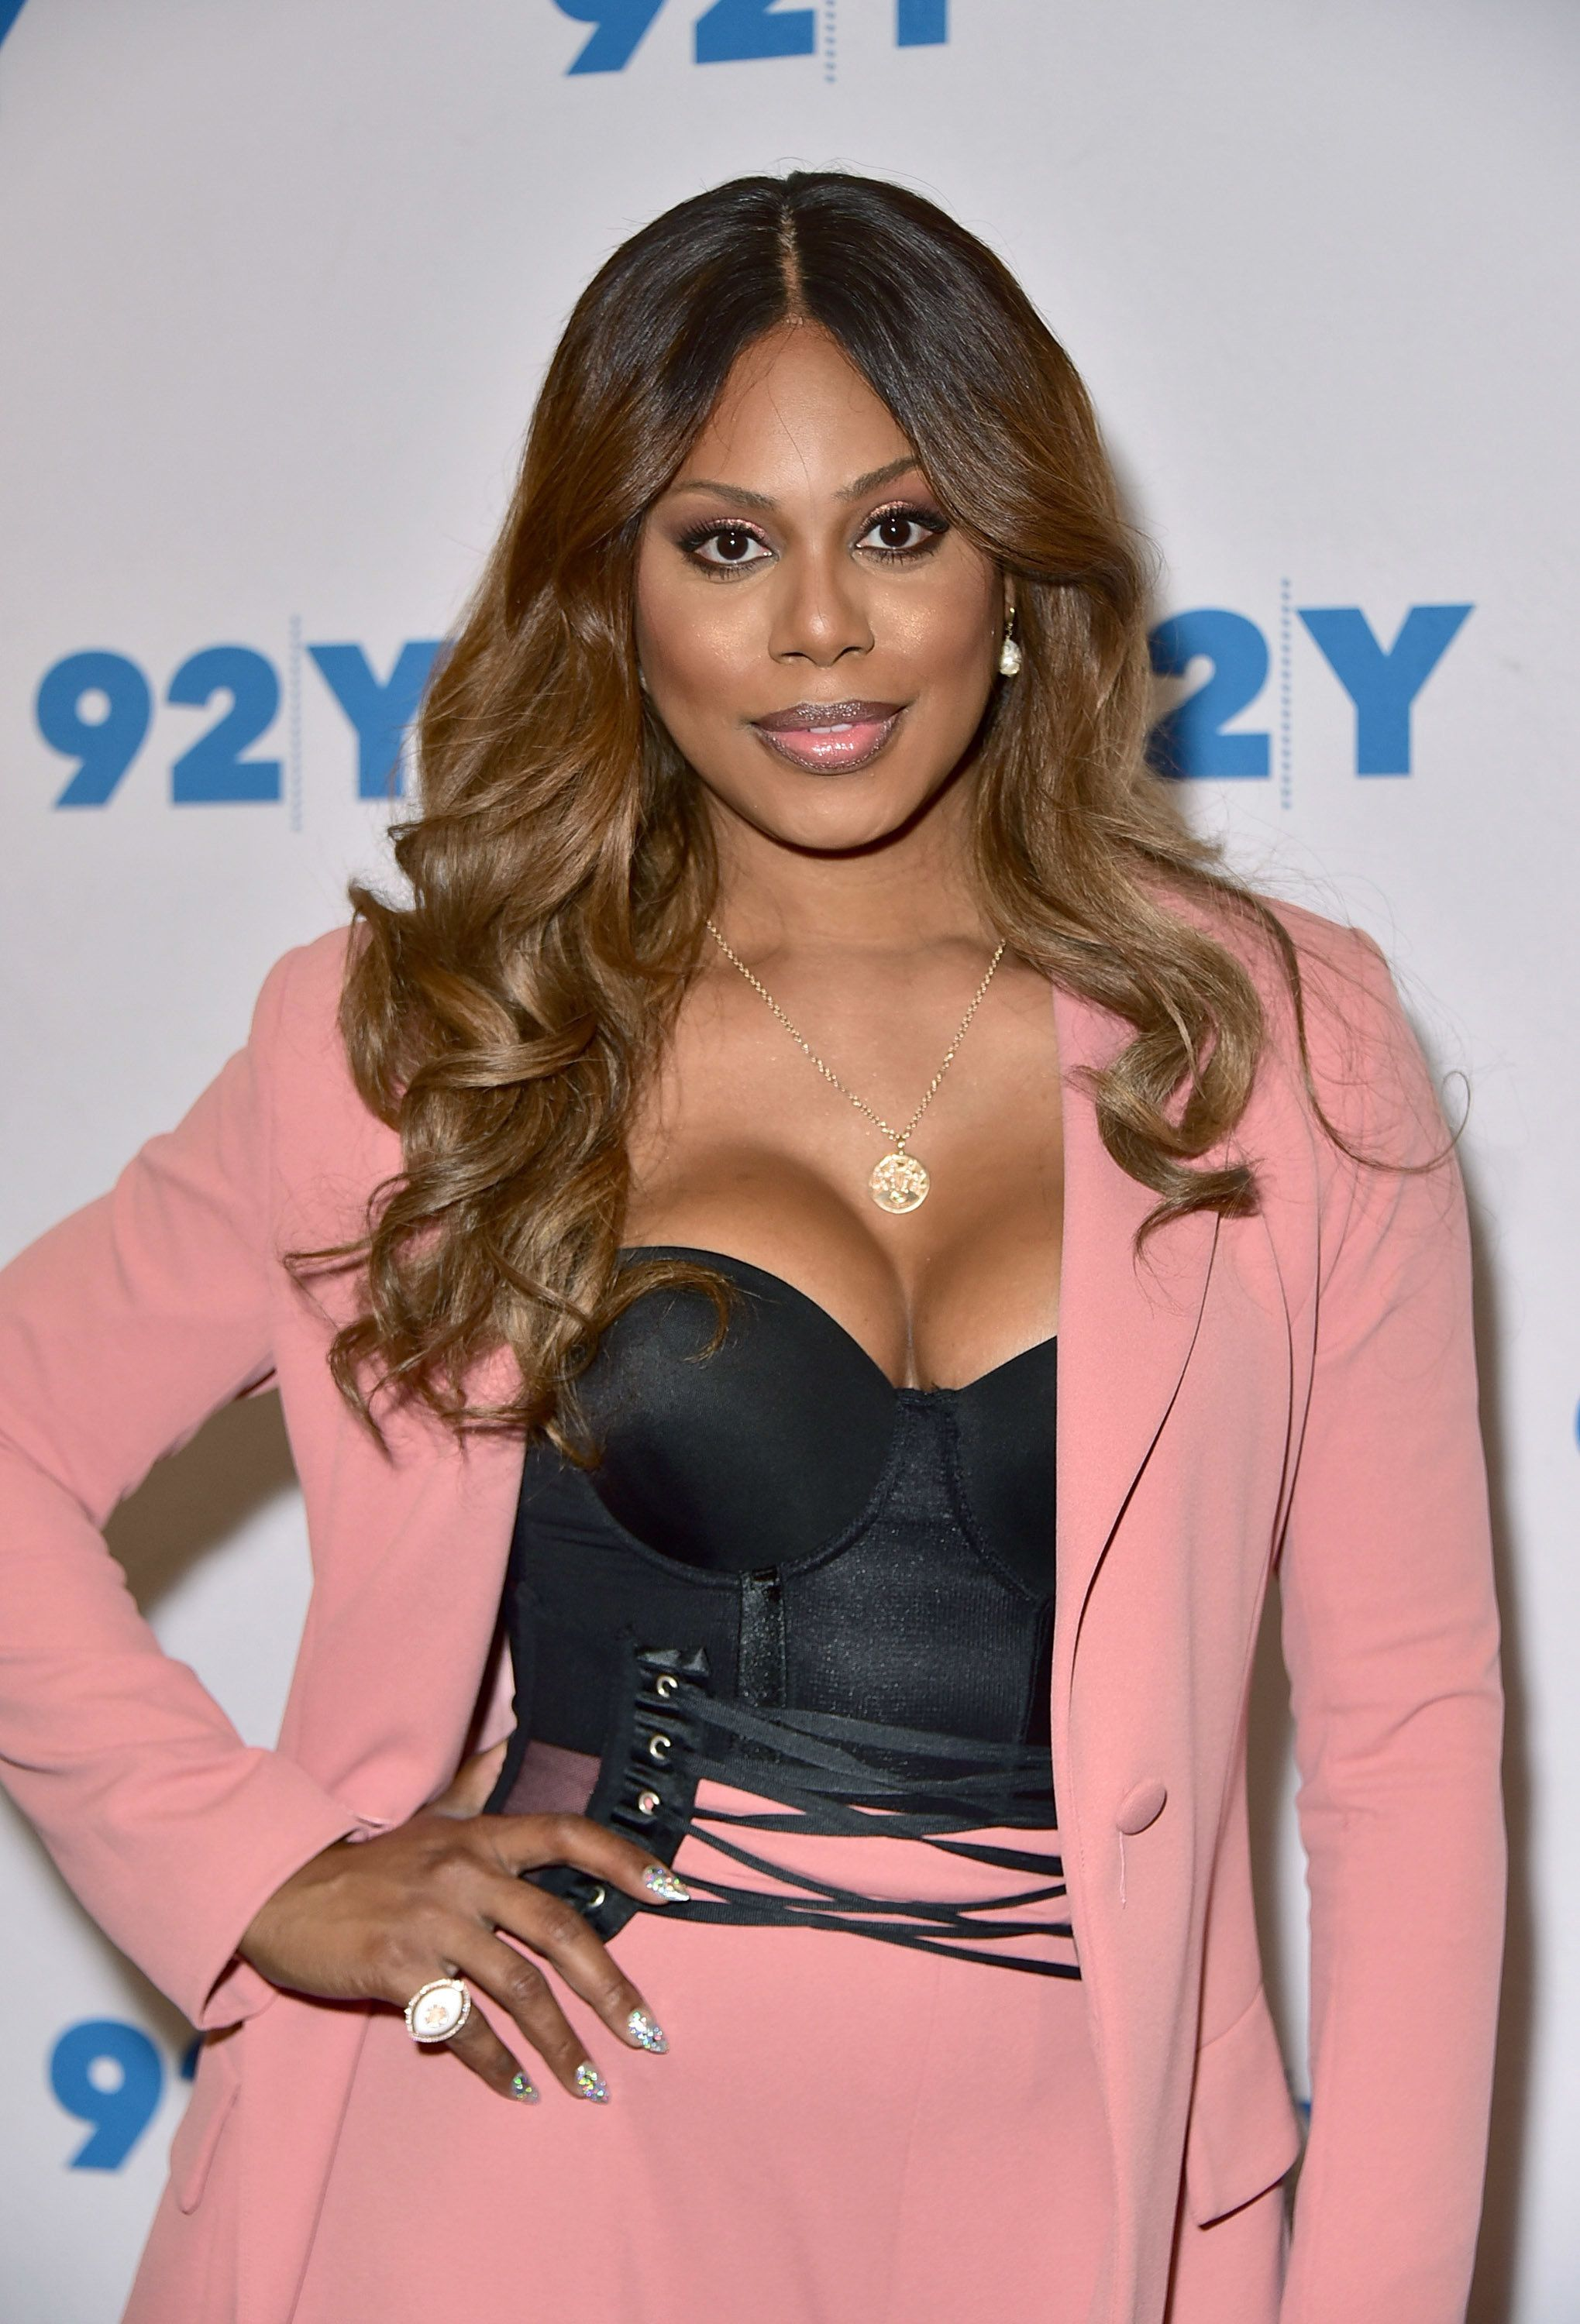 Laverne Cox Opens Up About Cisgender Actors Playing Transgender